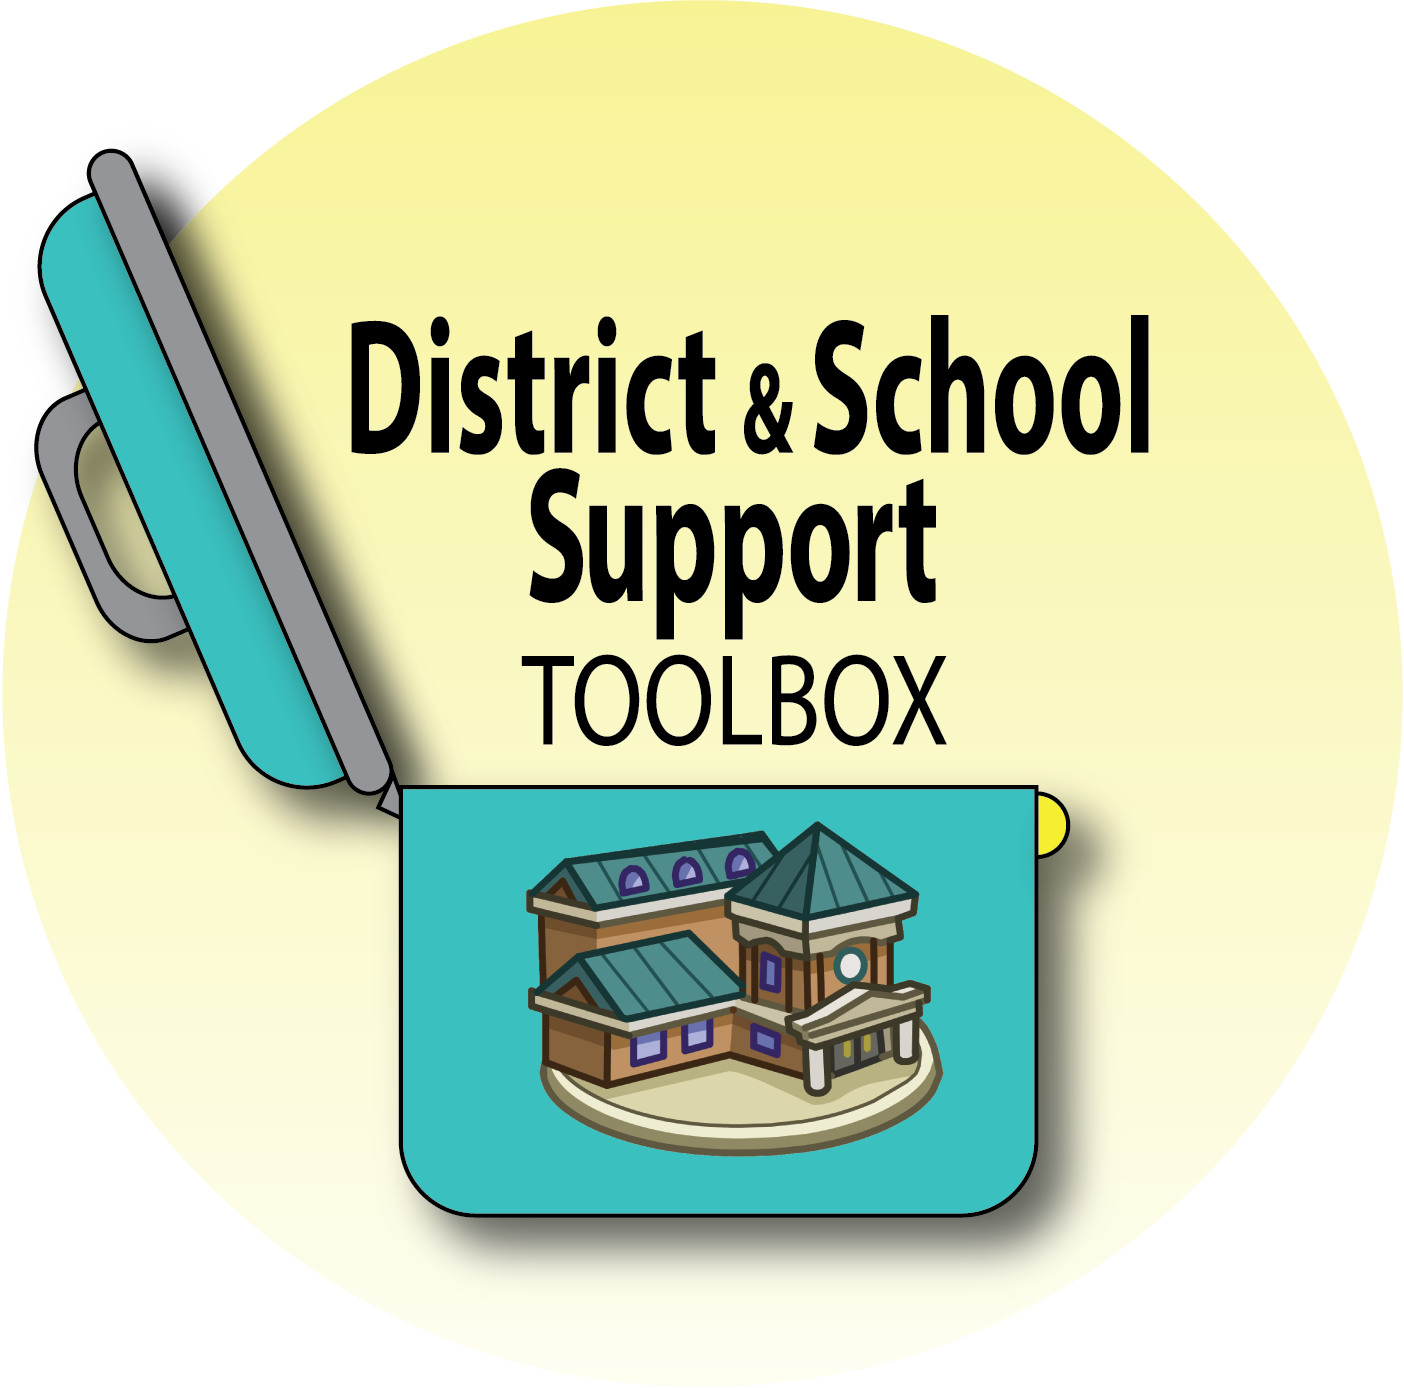 District and School Support Toolbox